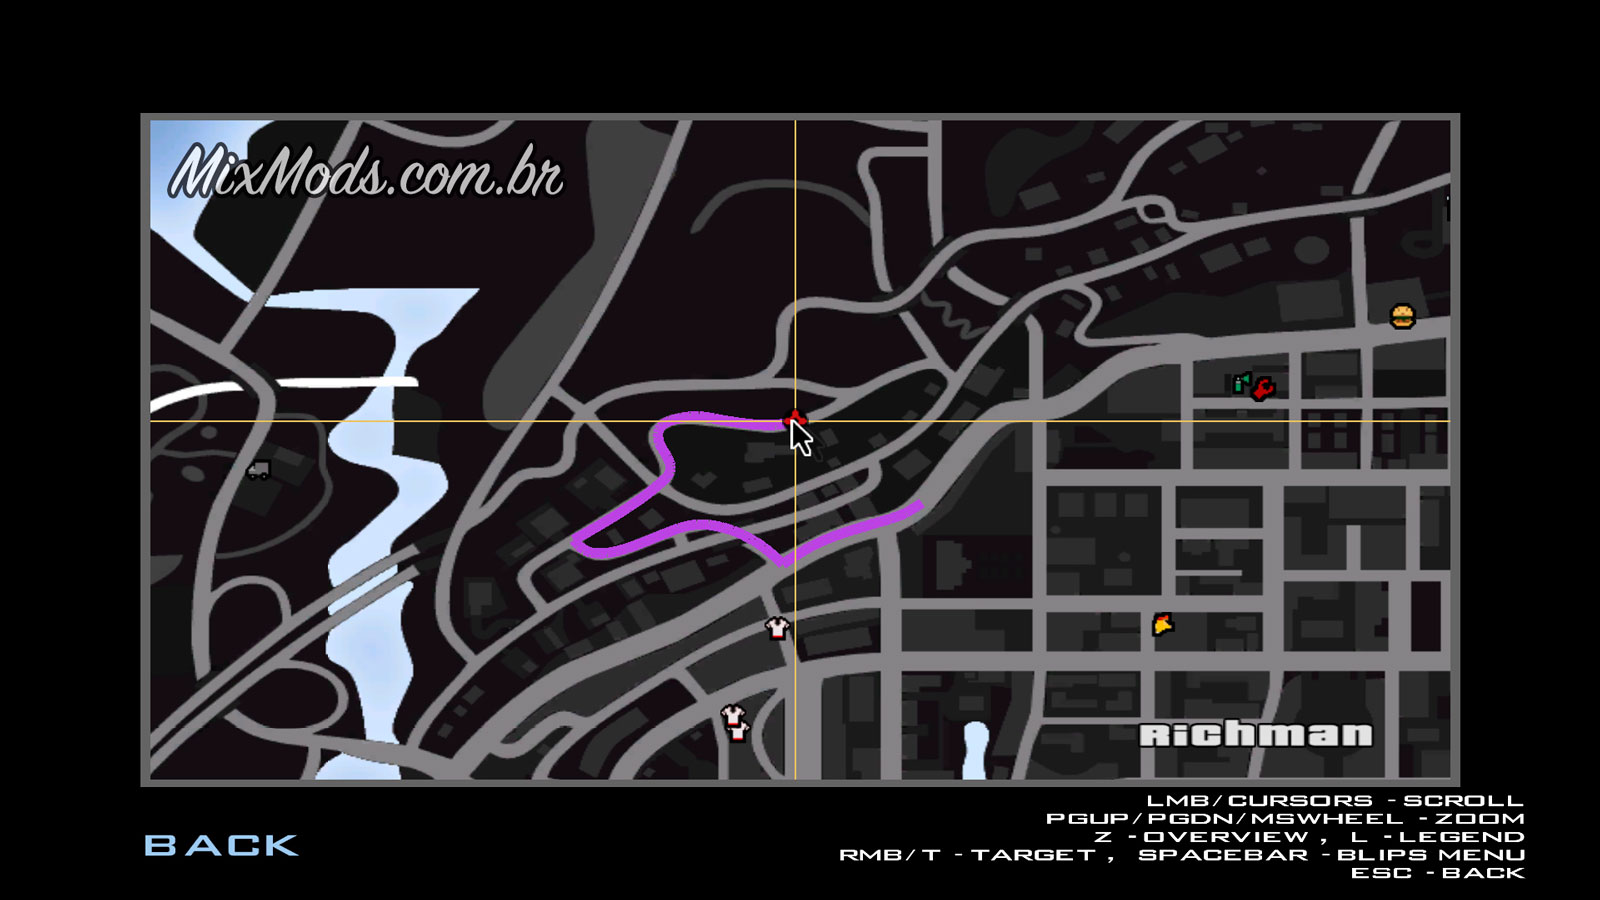 Gta san andreas mod gta 4 graphic download : coberkill